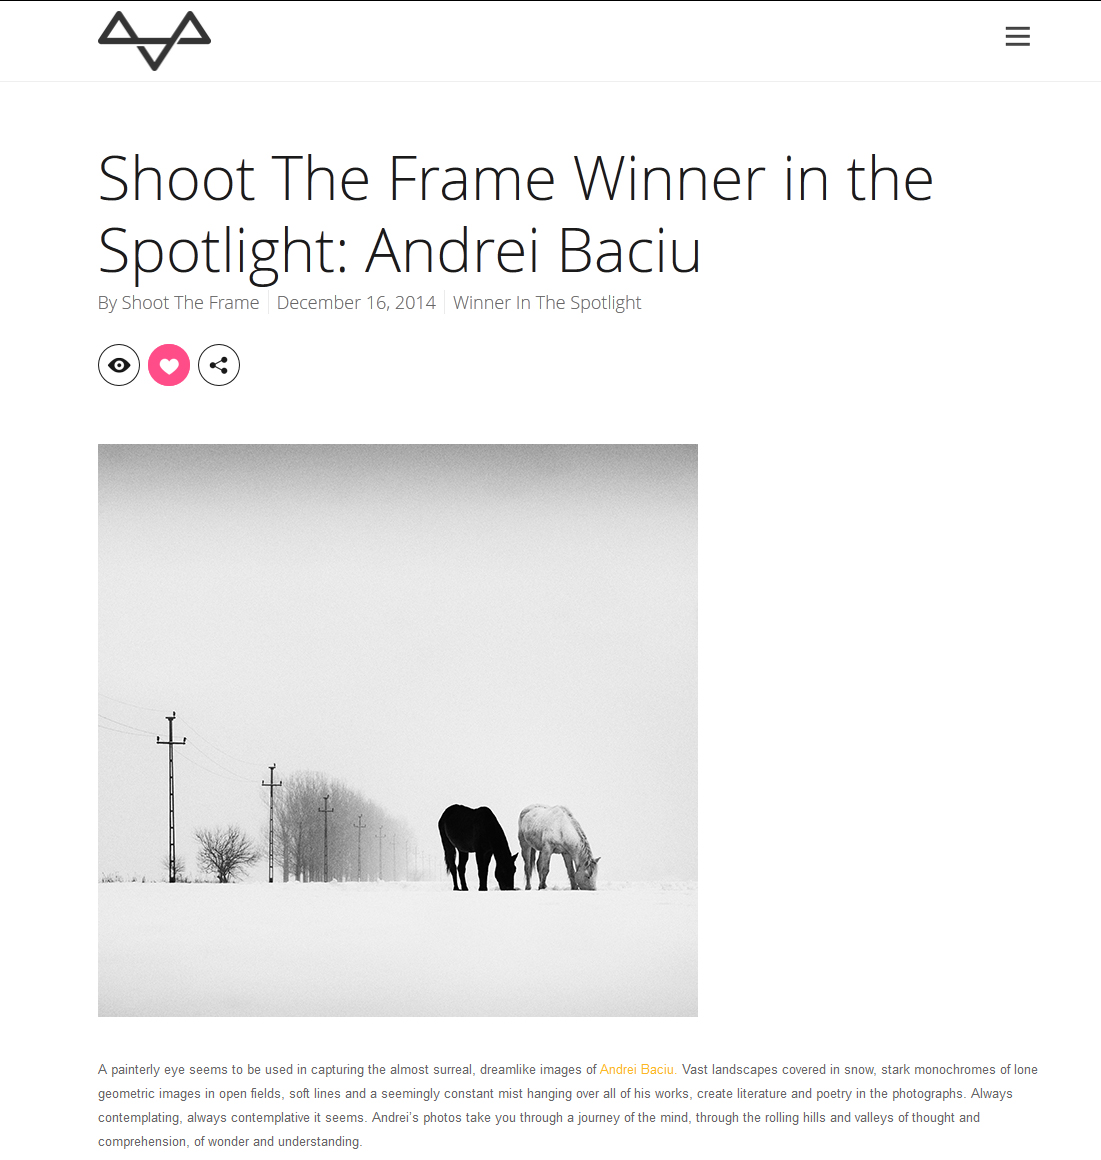 http://shoottheframe.com/winner-in-the-spotlight/shoot-the-frame-winner-in-the-spotlight-andrei-bacui/